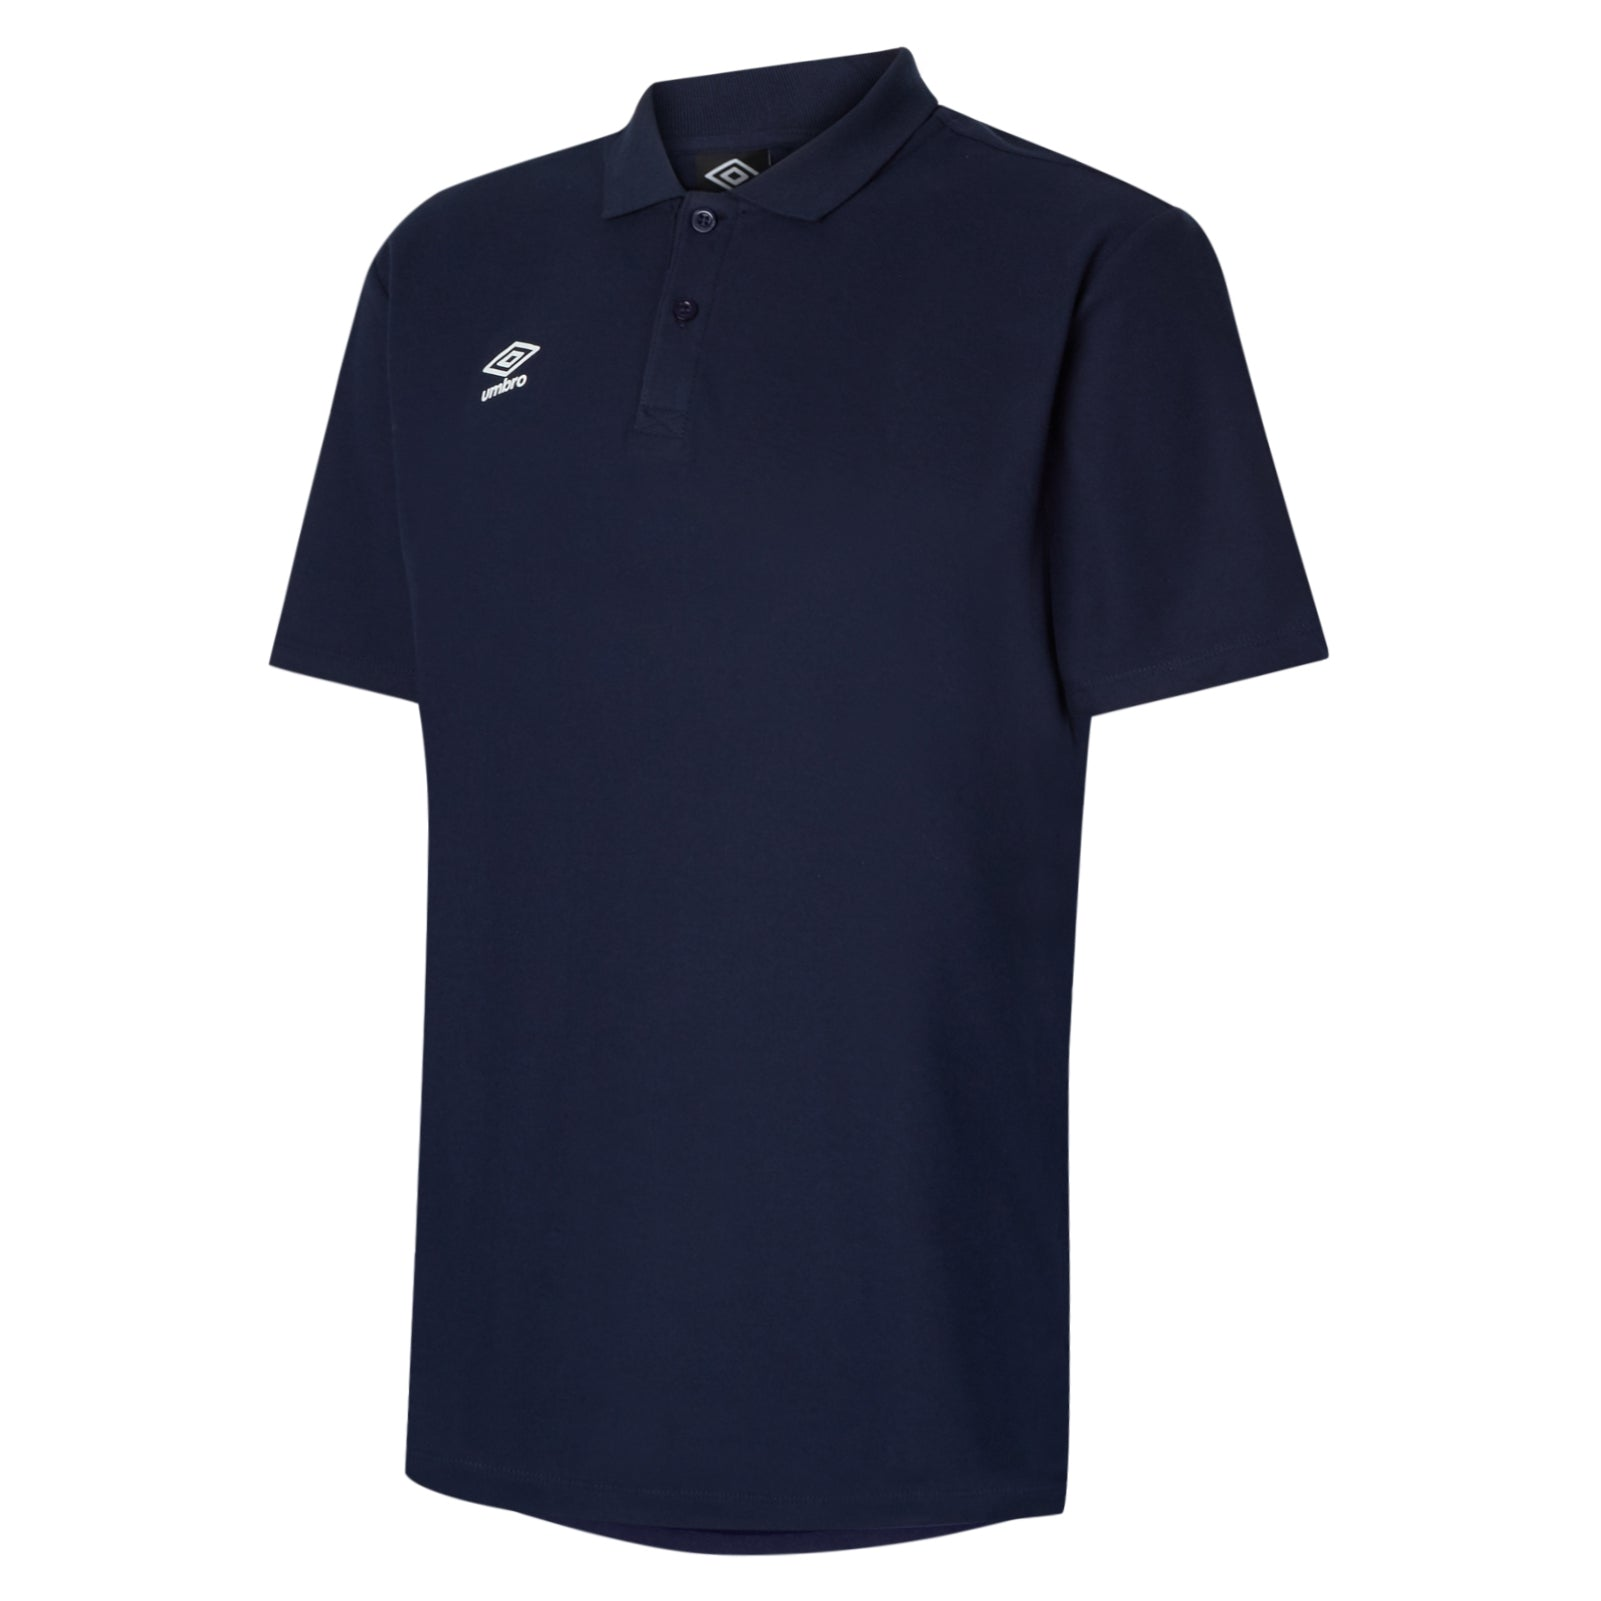 Umbro Club Essential Polo in Dark navy with white Umbro Diamond logo on right chest